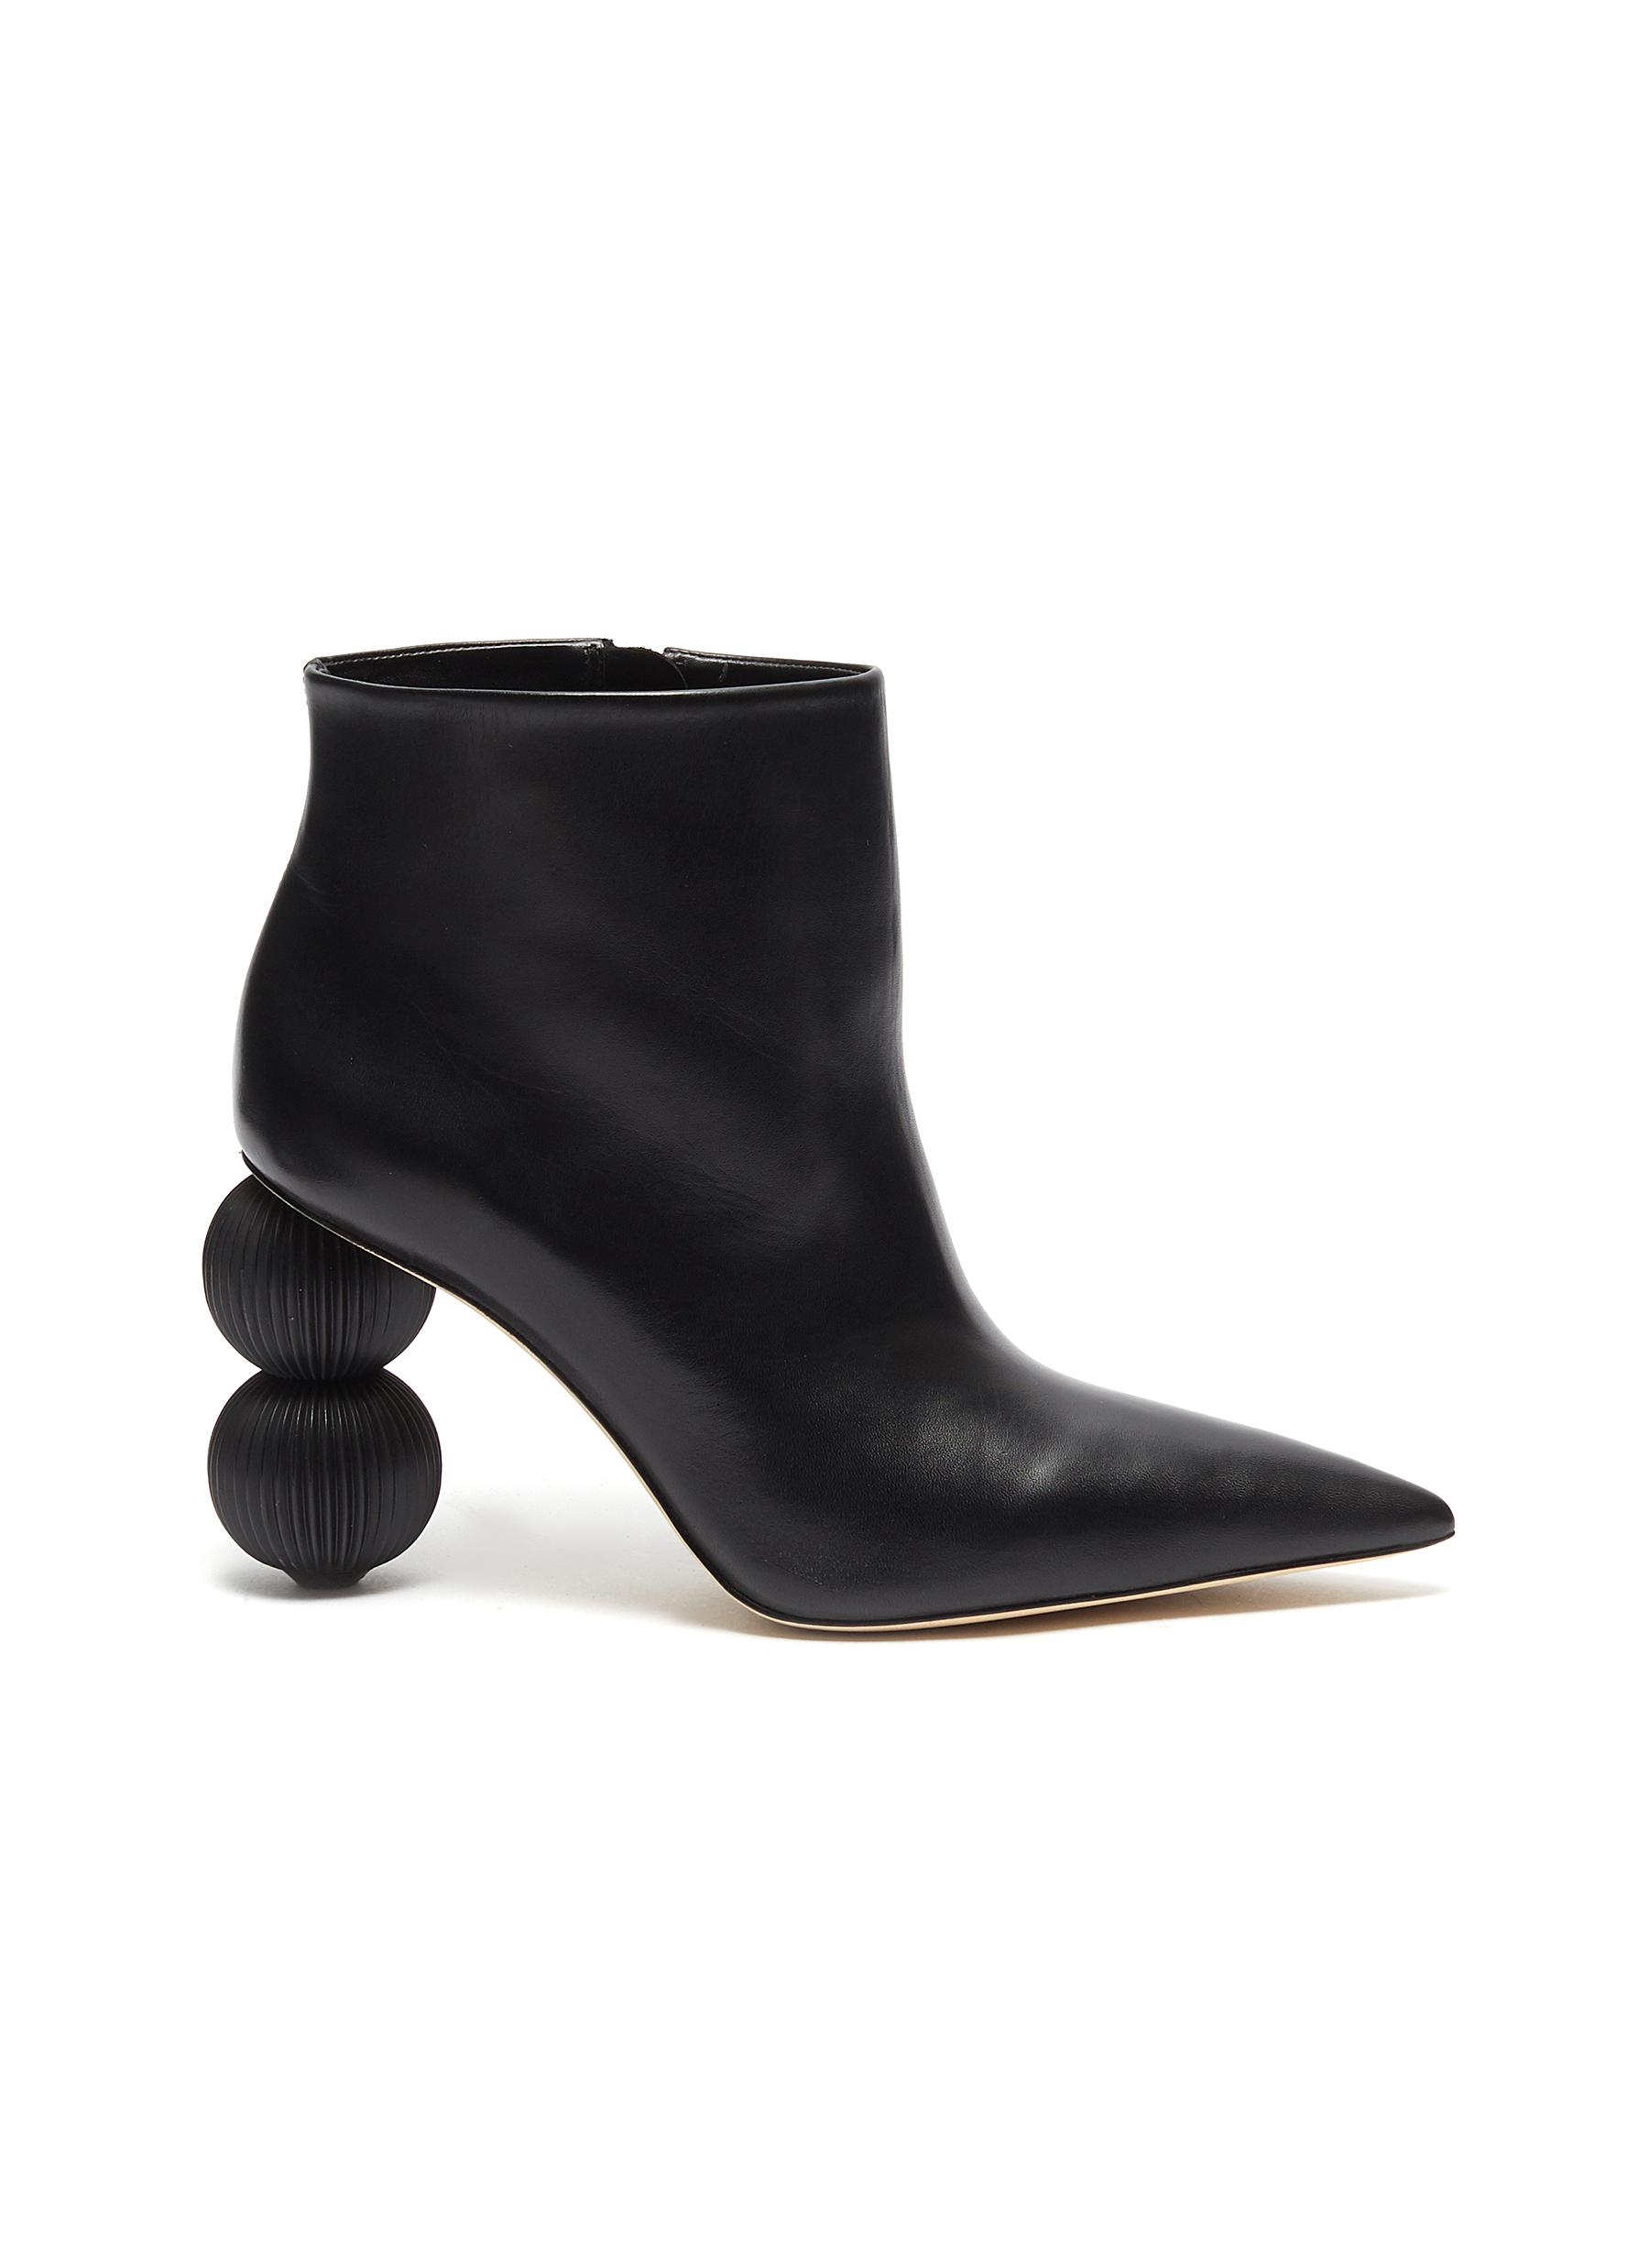 Cam stack ball heel ankle boots by Cult Gaia